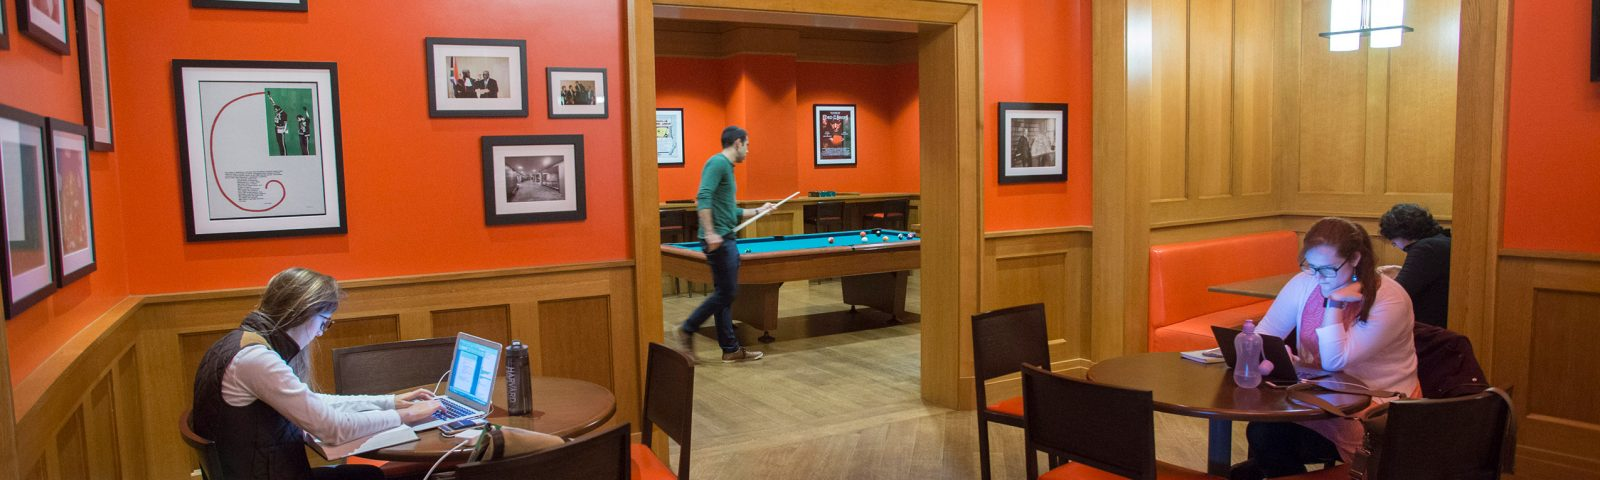 Students study in the pub while another plays pool